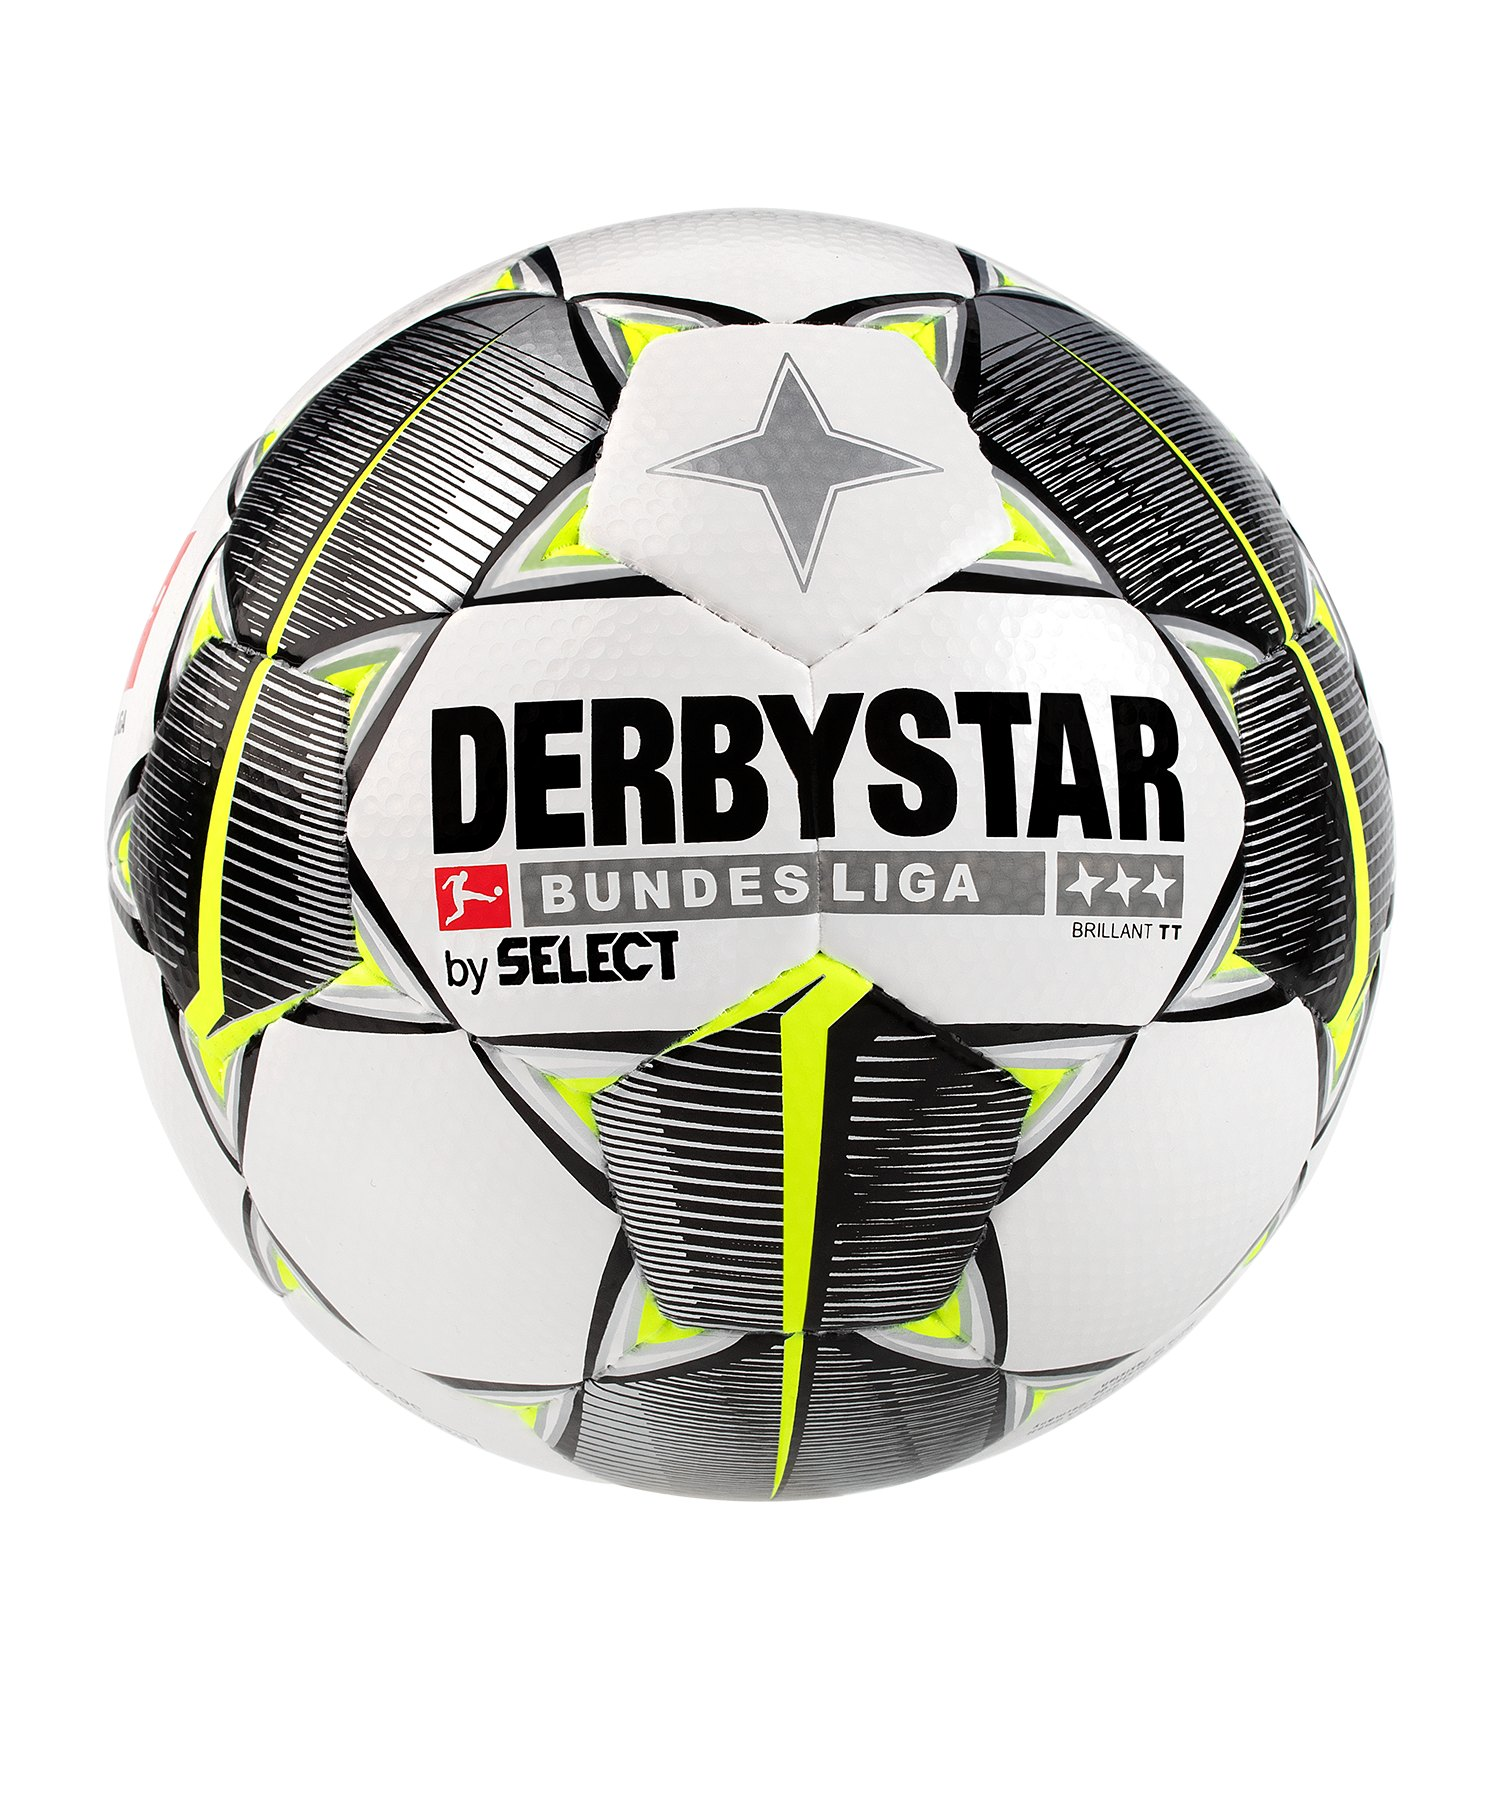 Derbystar Bundesliga Brillant TT HS Trainingsball Weiss F019 - weiss